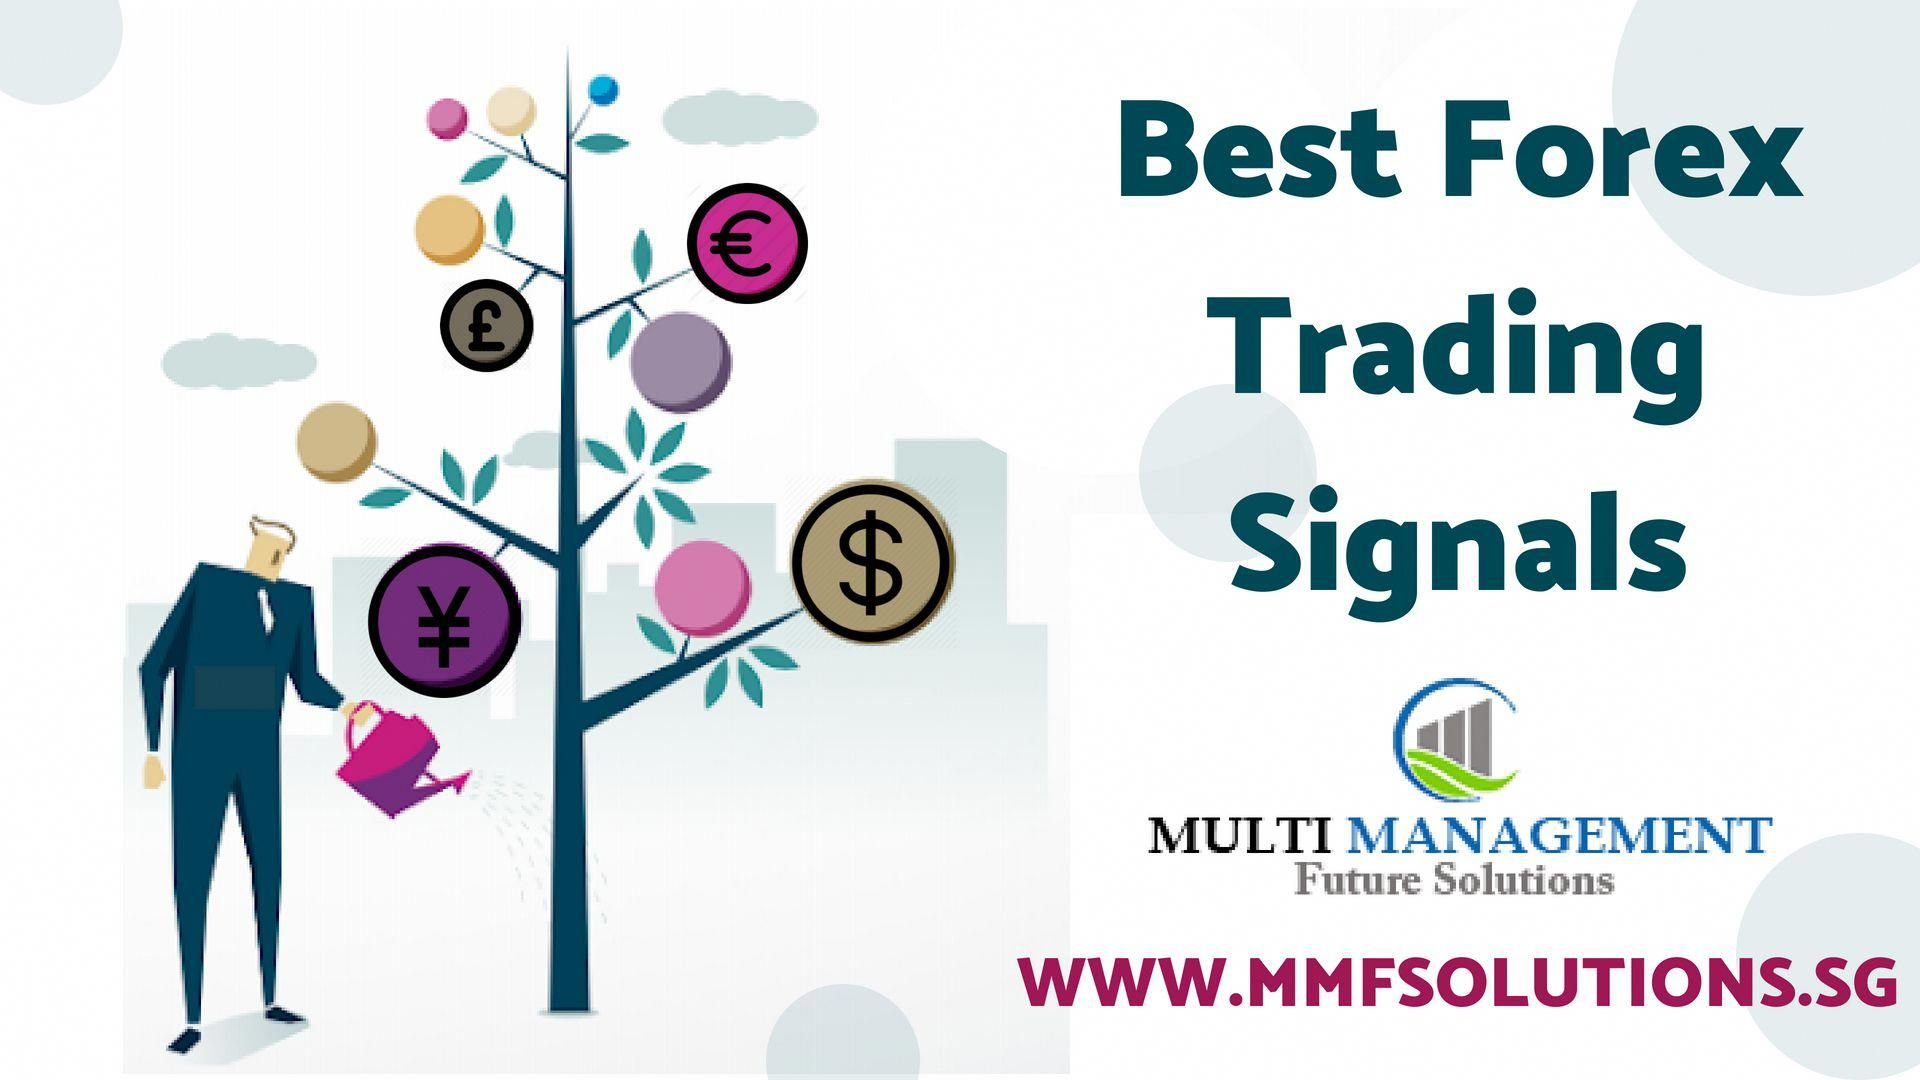 We Are Providing The Best Quality Forex Signals Our Research Team